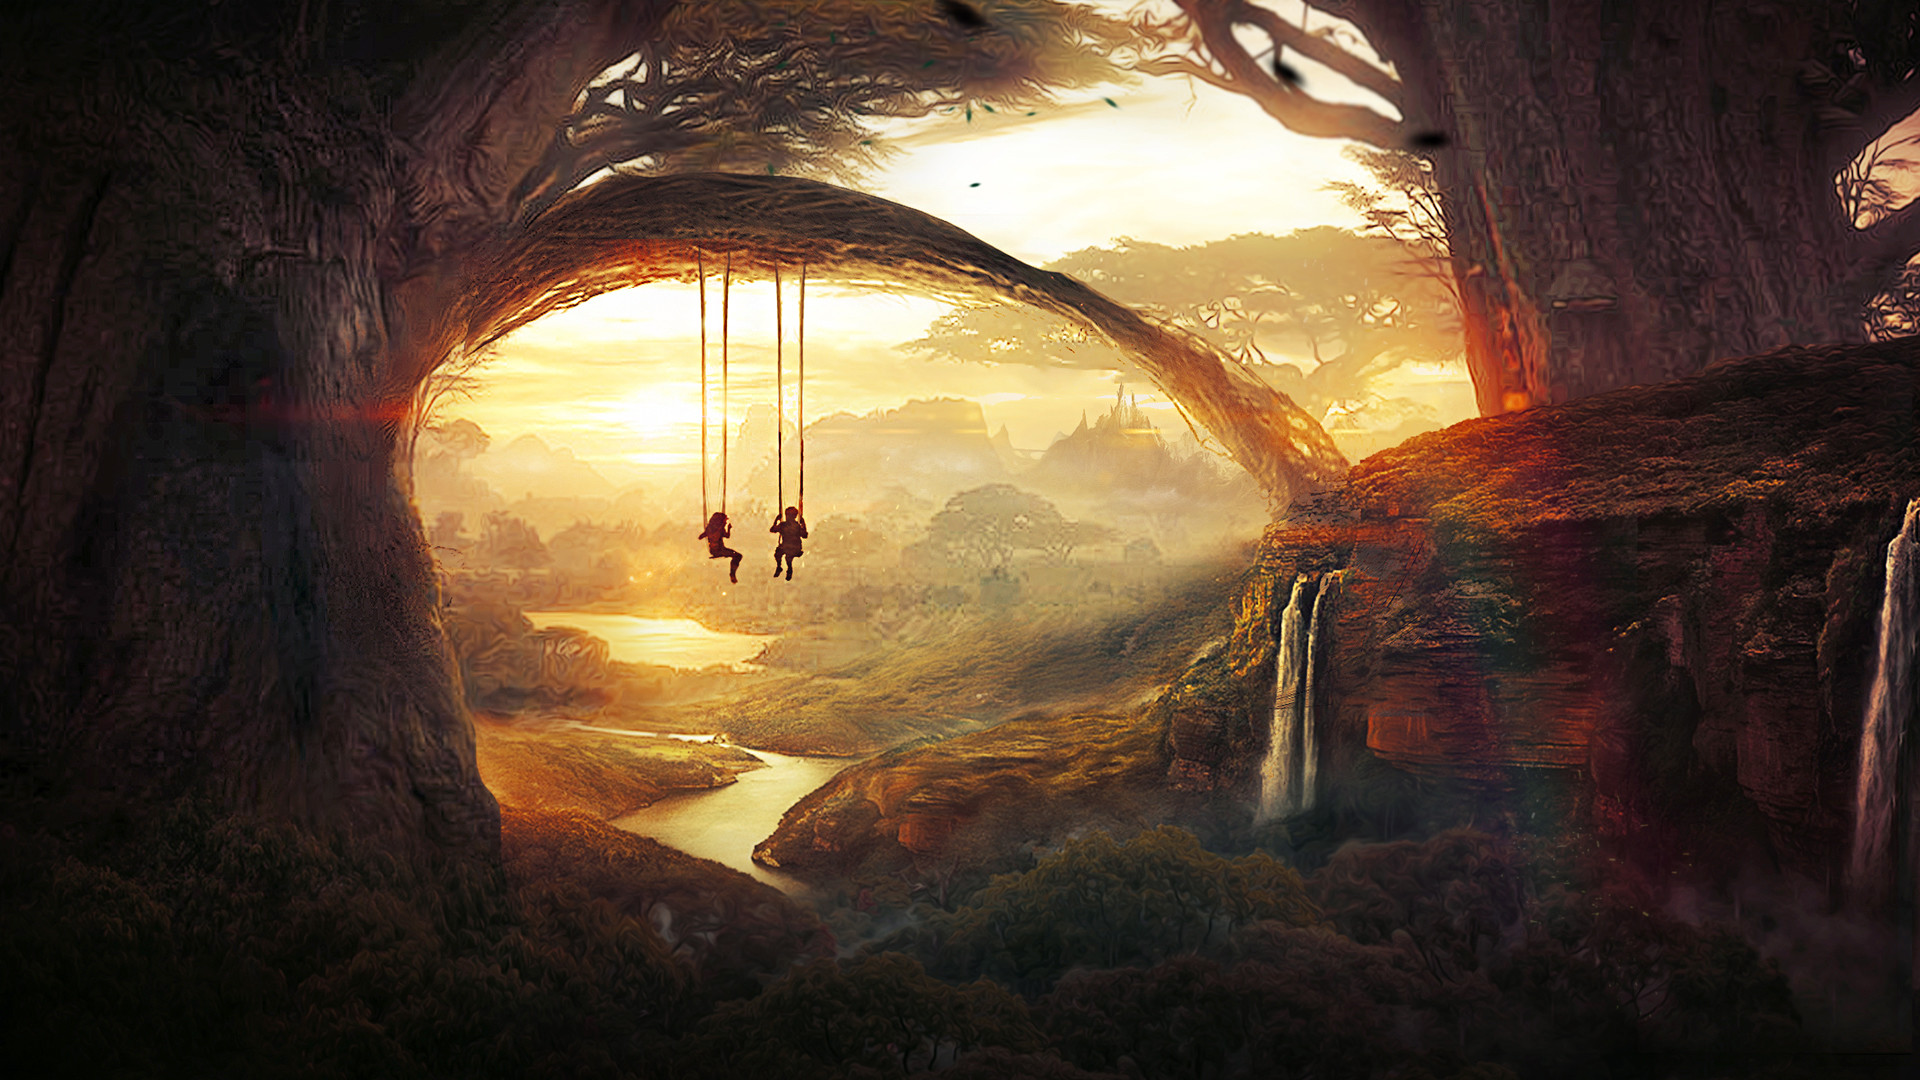 Epic Background Wallpapers 35597 - Baltana